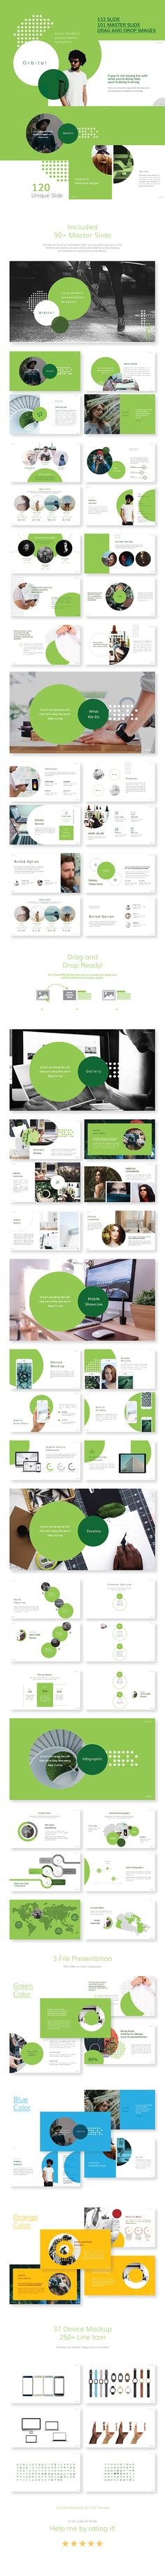 Orbital - Neue Minimalist Powerpoint Presentation - Business PowerPoint Templates